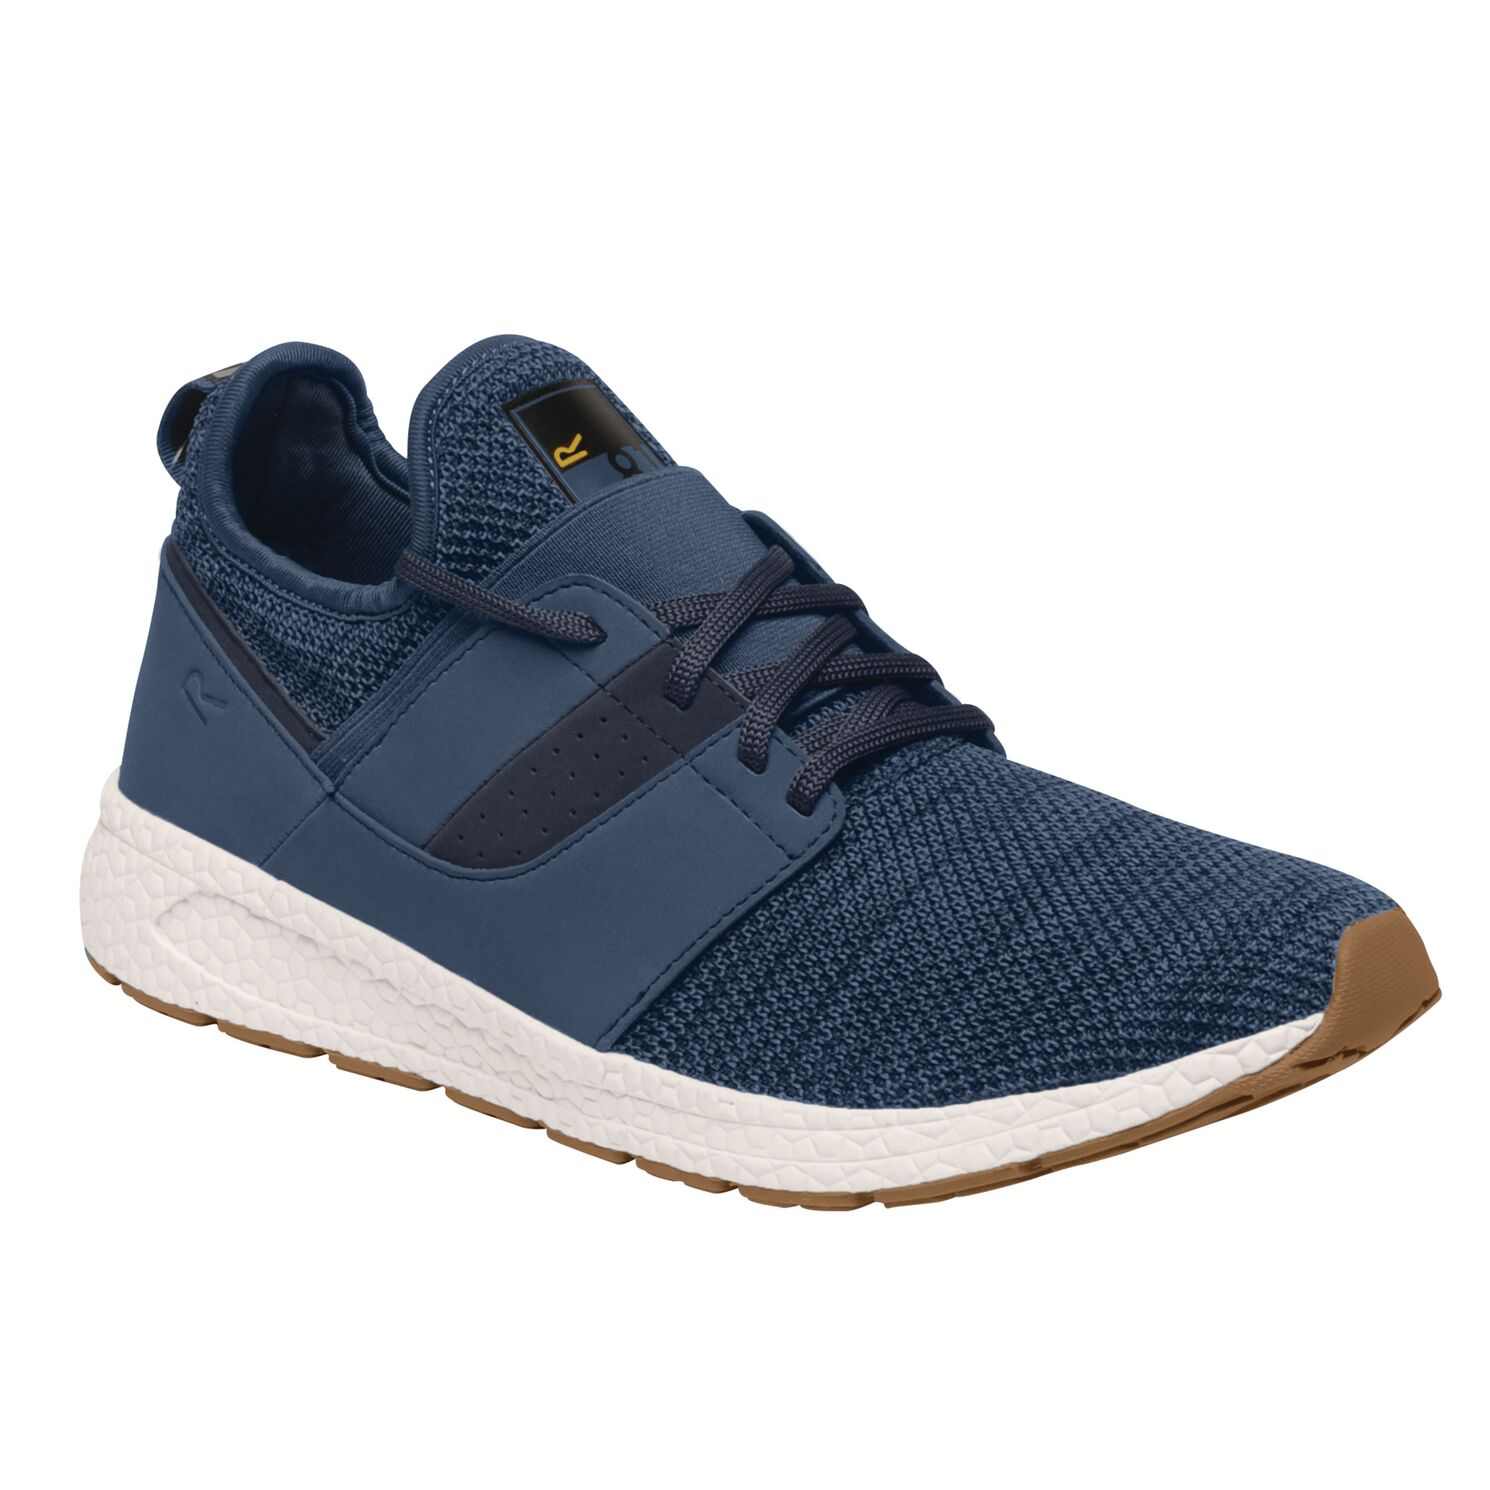 Men's blue trainer with a white sole.